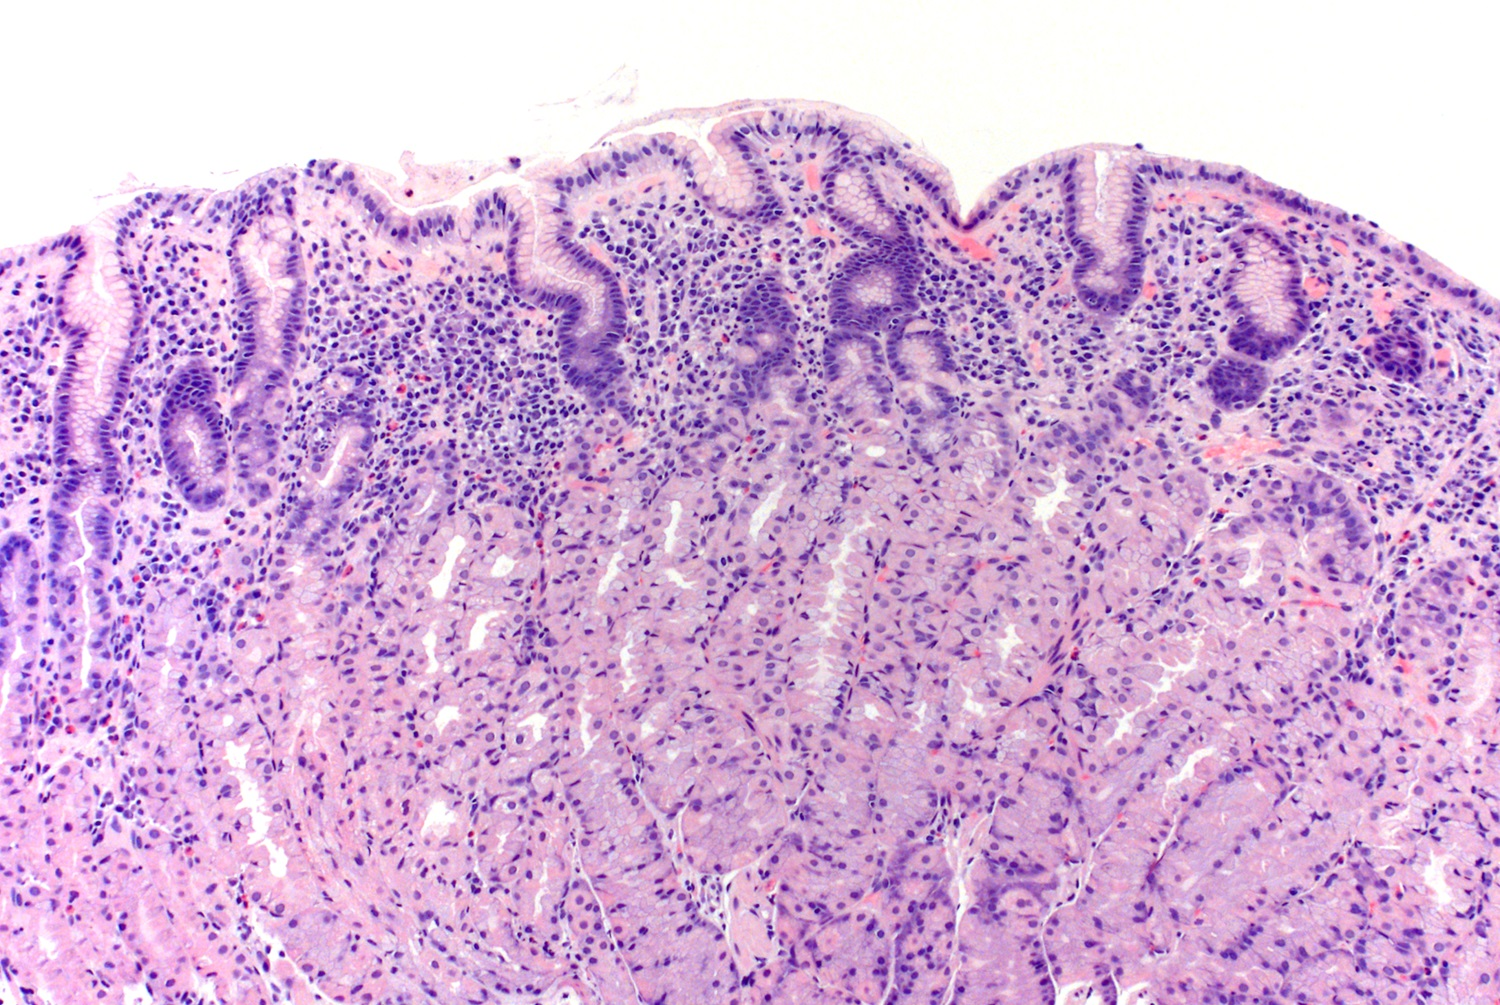 Histology of <i>H. pylori</i> stomach body